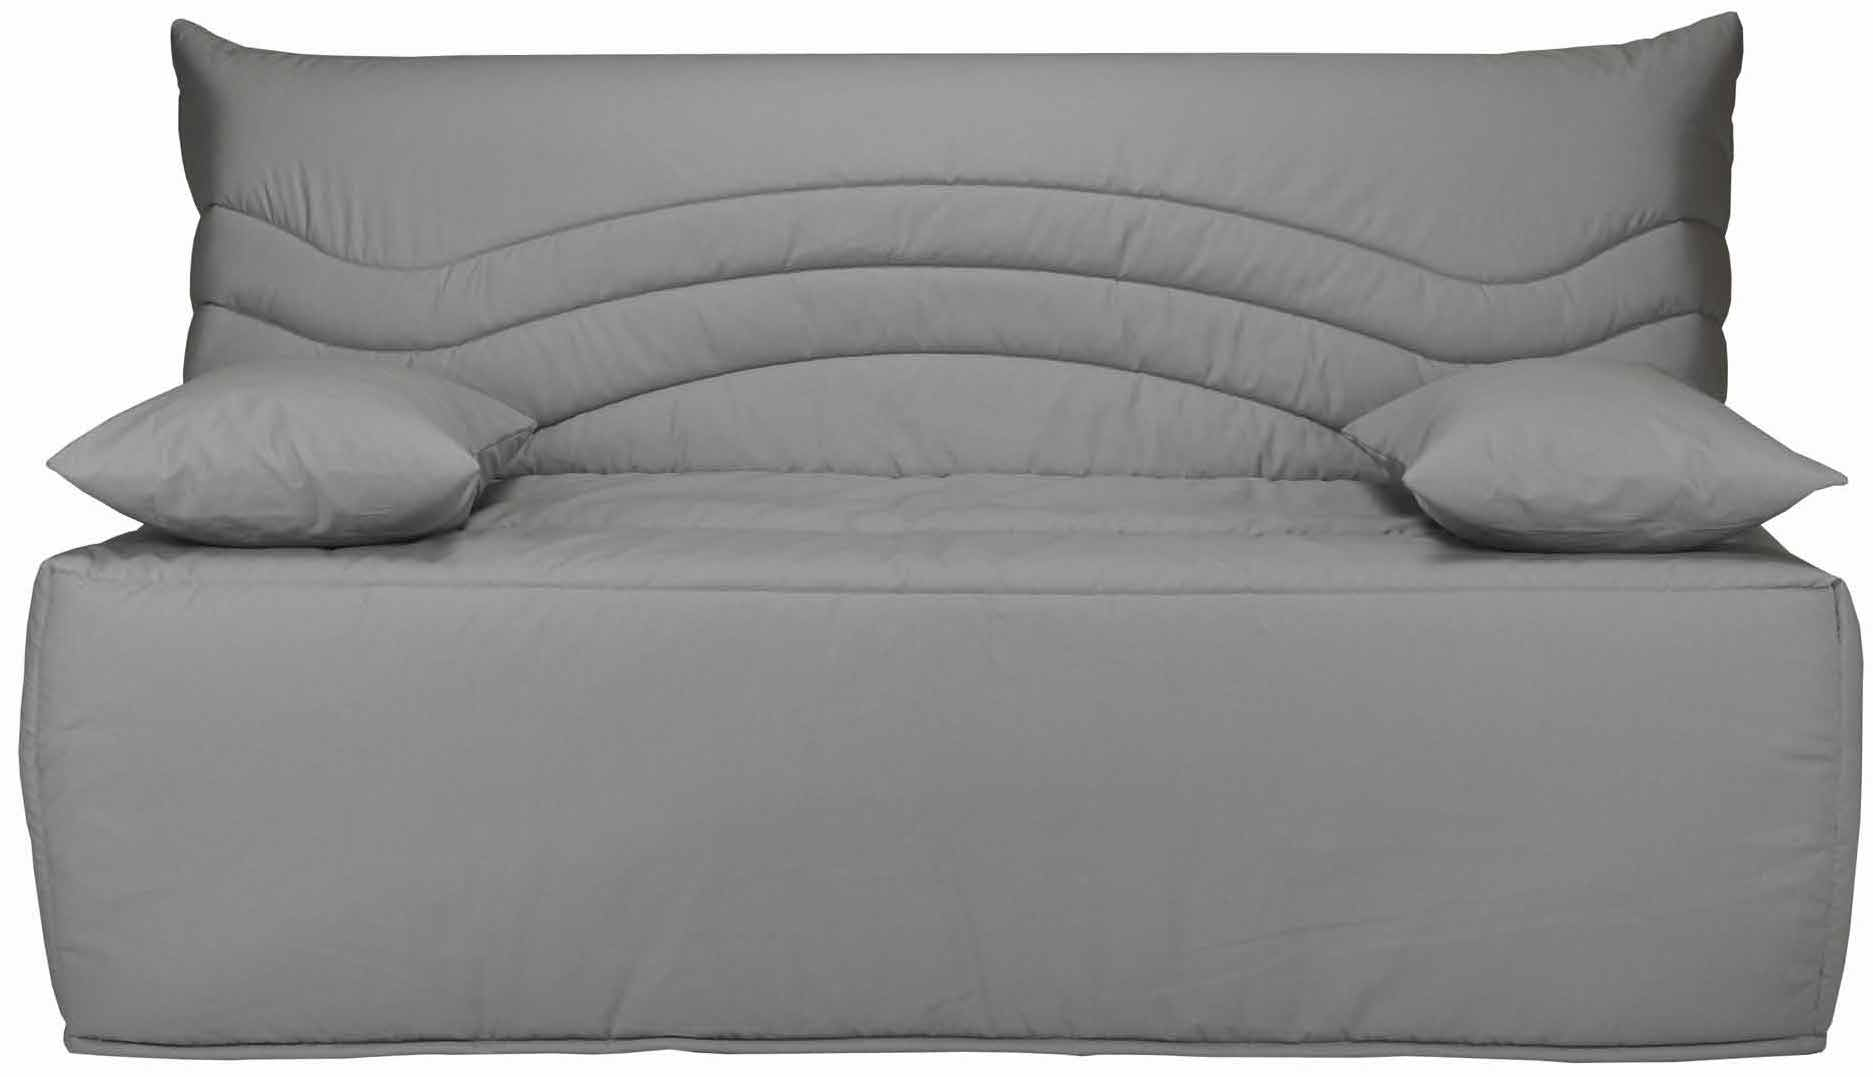 banquette bz gris 160 matelas sofaconfort 12 cm brioca. Black Bedroom Furniture Sets. Home Design Ideas